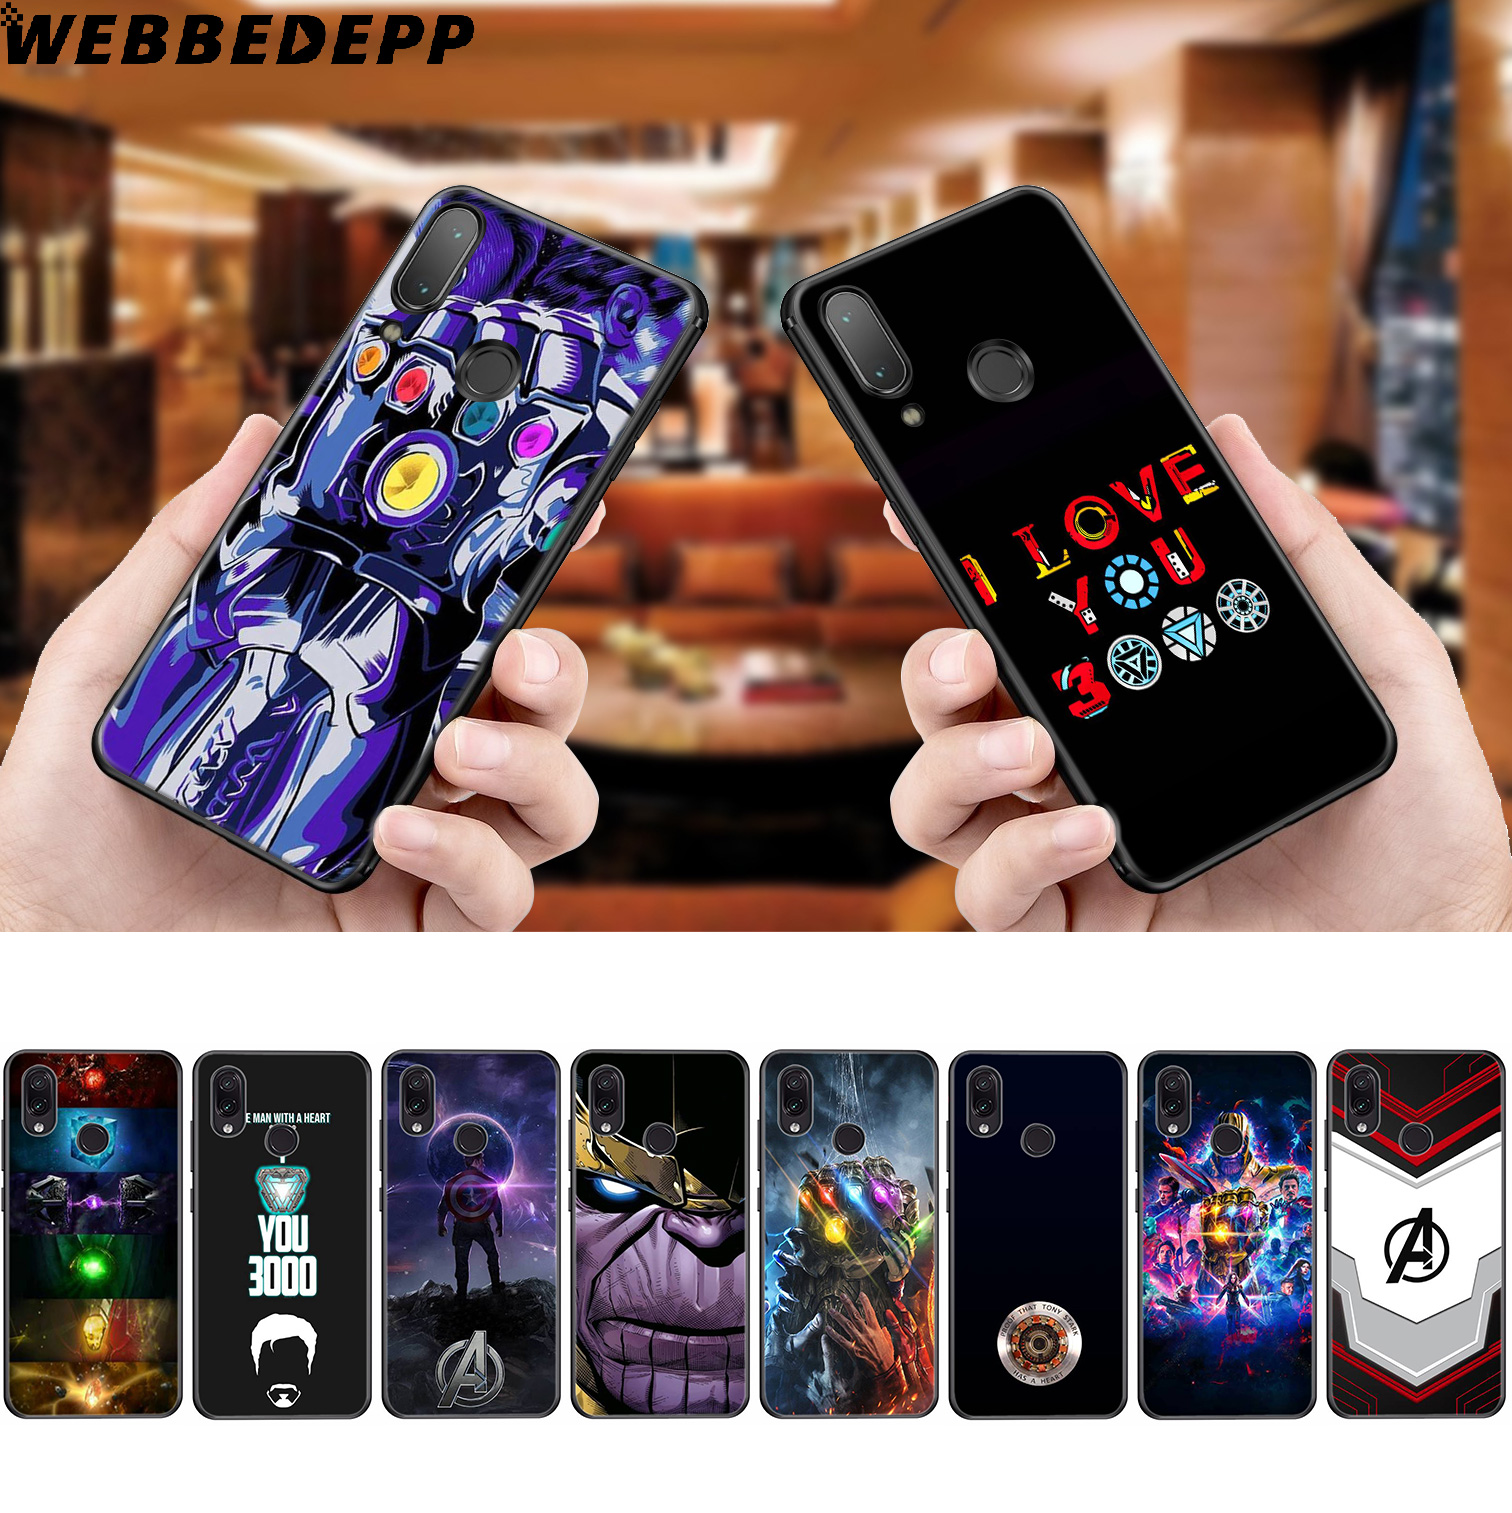 ENDGAME Avengers Marvel <font><b>3000</b></font> Soft Case for Xiaomi Redmi K20 7A 4A 4X 5 5A 6 6A S2 Note 8 4 4X 5 6 5A <font><b>7</b></font> Pro Plus Prime image